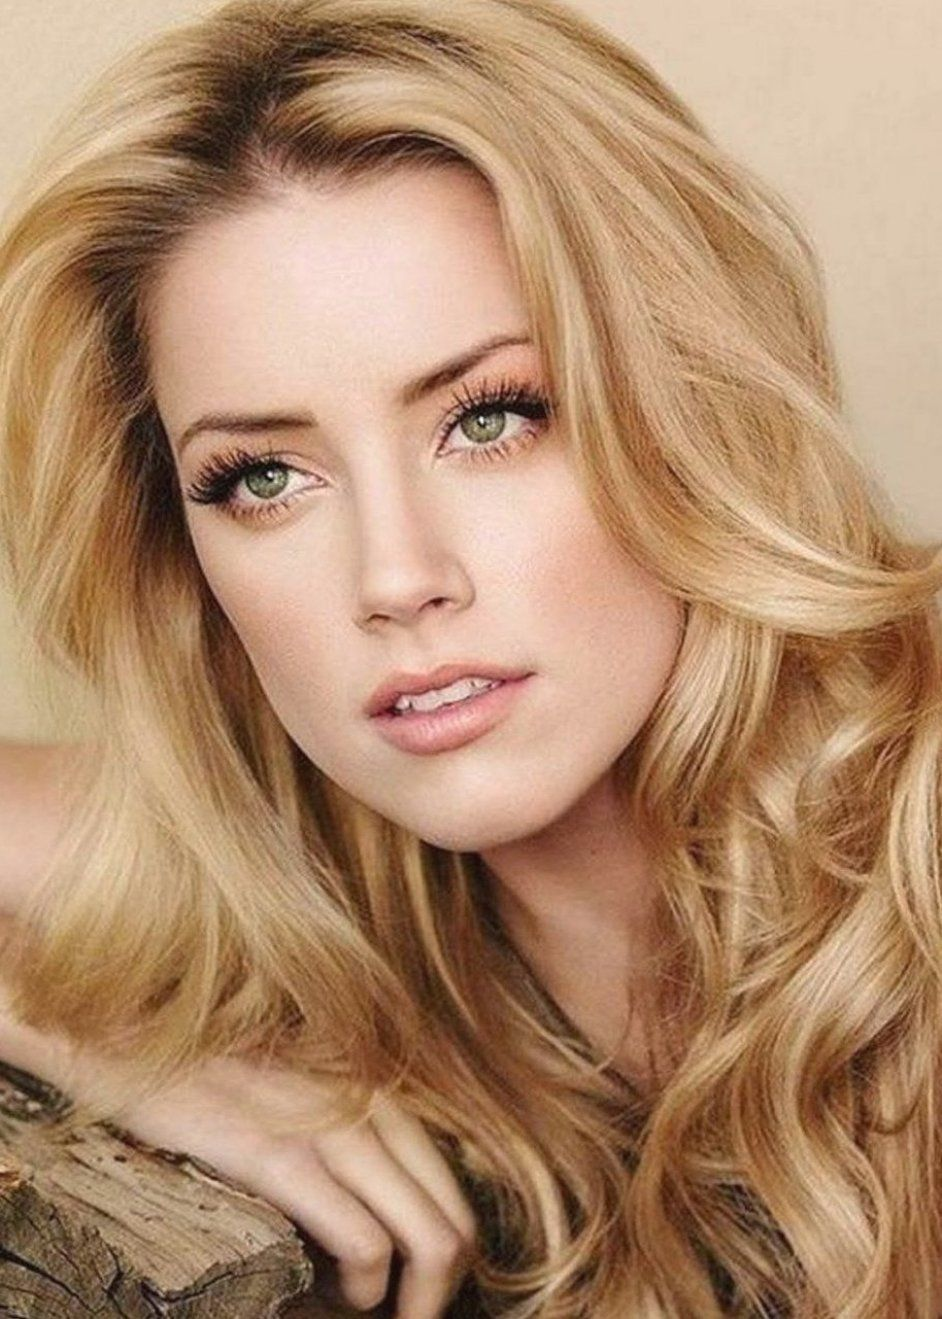 What Is The Best Shade Of Blonde For Super Fair Skin Beautyeditor Beautytutorials Balayagehair Blond In 2020 Hair Pale Skin Cool Blonde Hair Skin Tone Hair Color